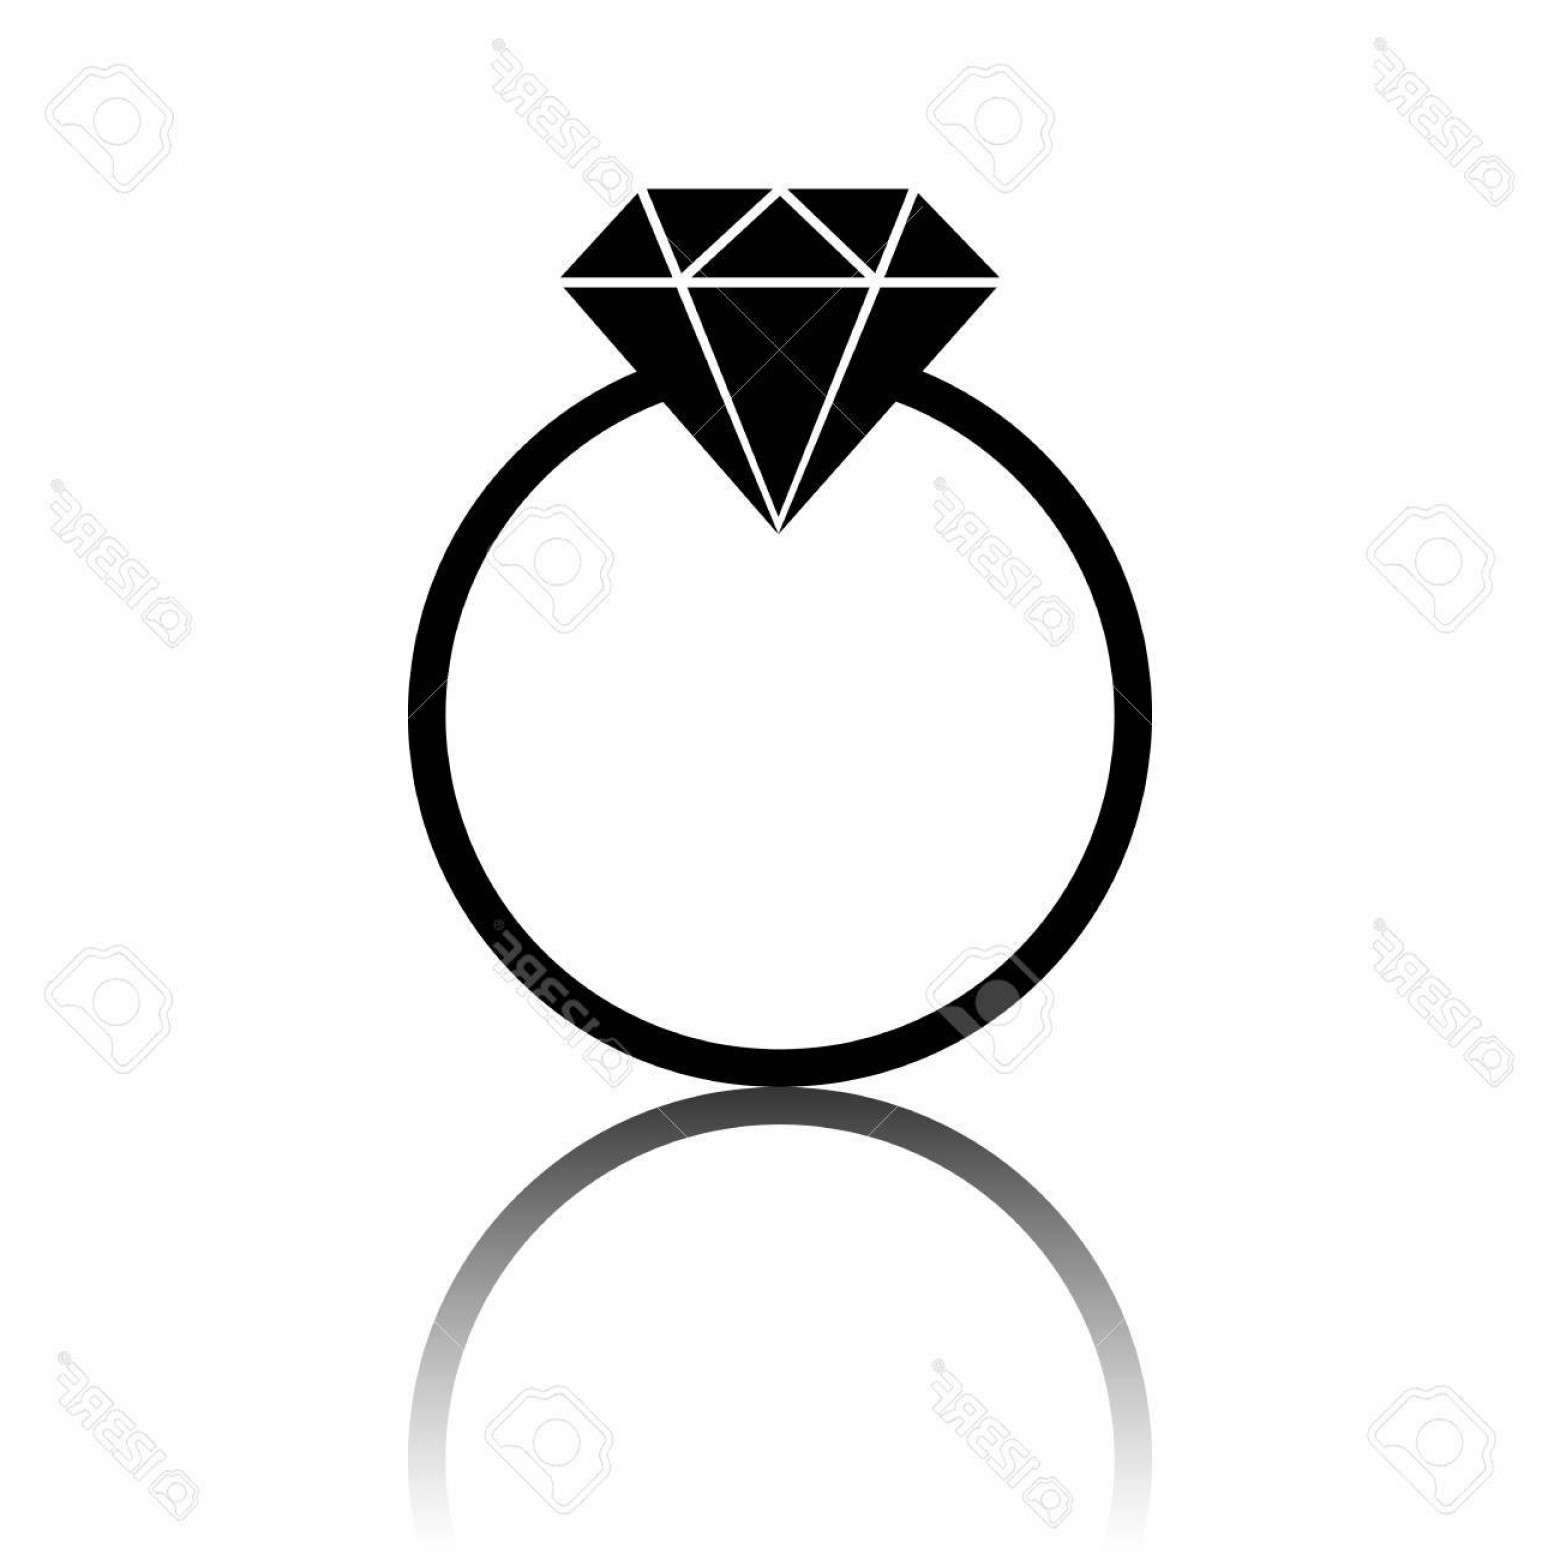 Black Diamond Vector Clip Art: Photostock Vector Black Diamond Icon Vector Illustration With Shadow